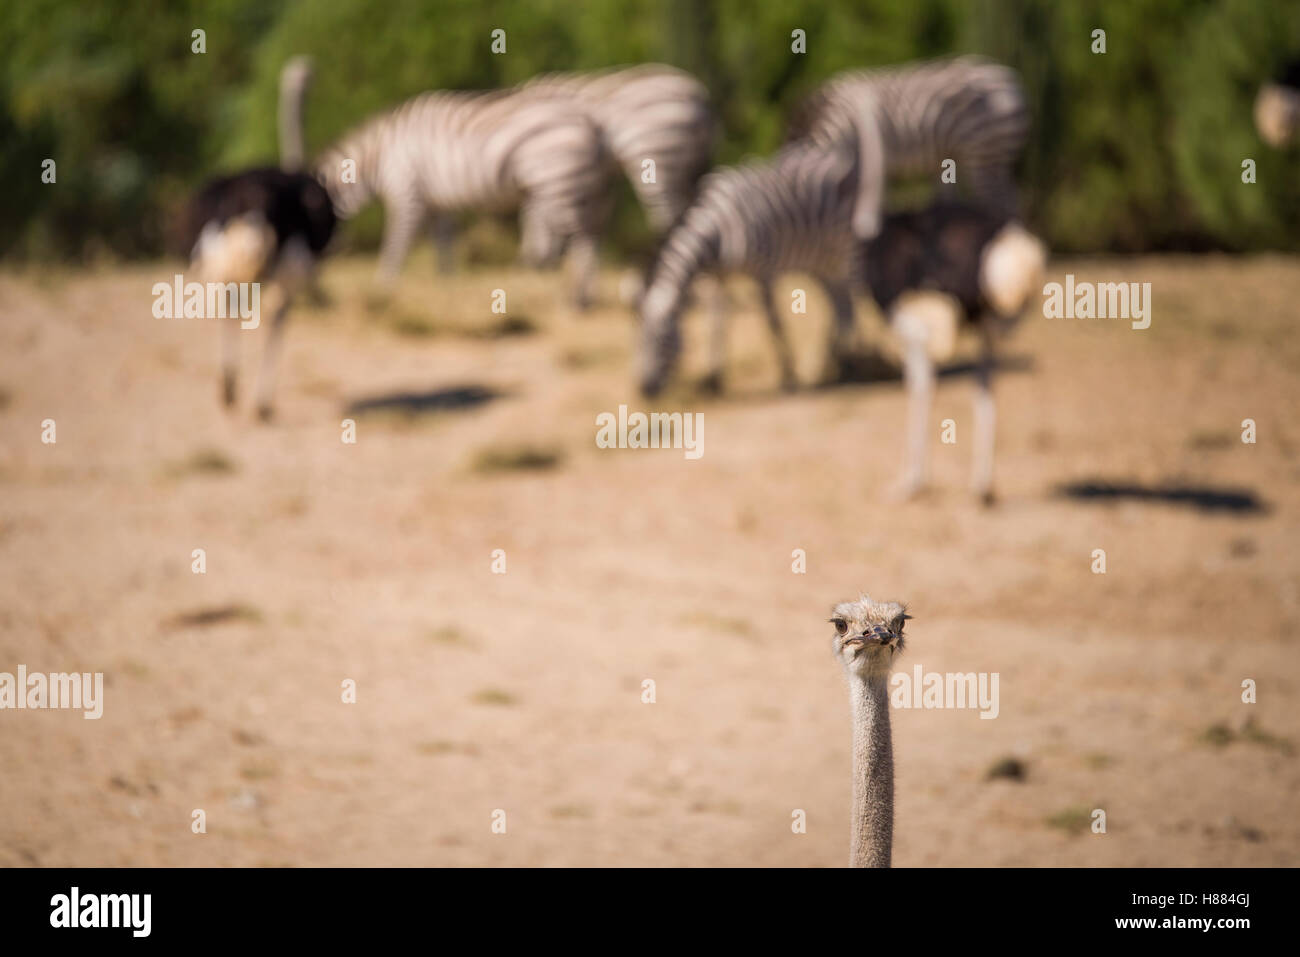 Ostrich in a national park with defocused animals on the background. Stock Photo